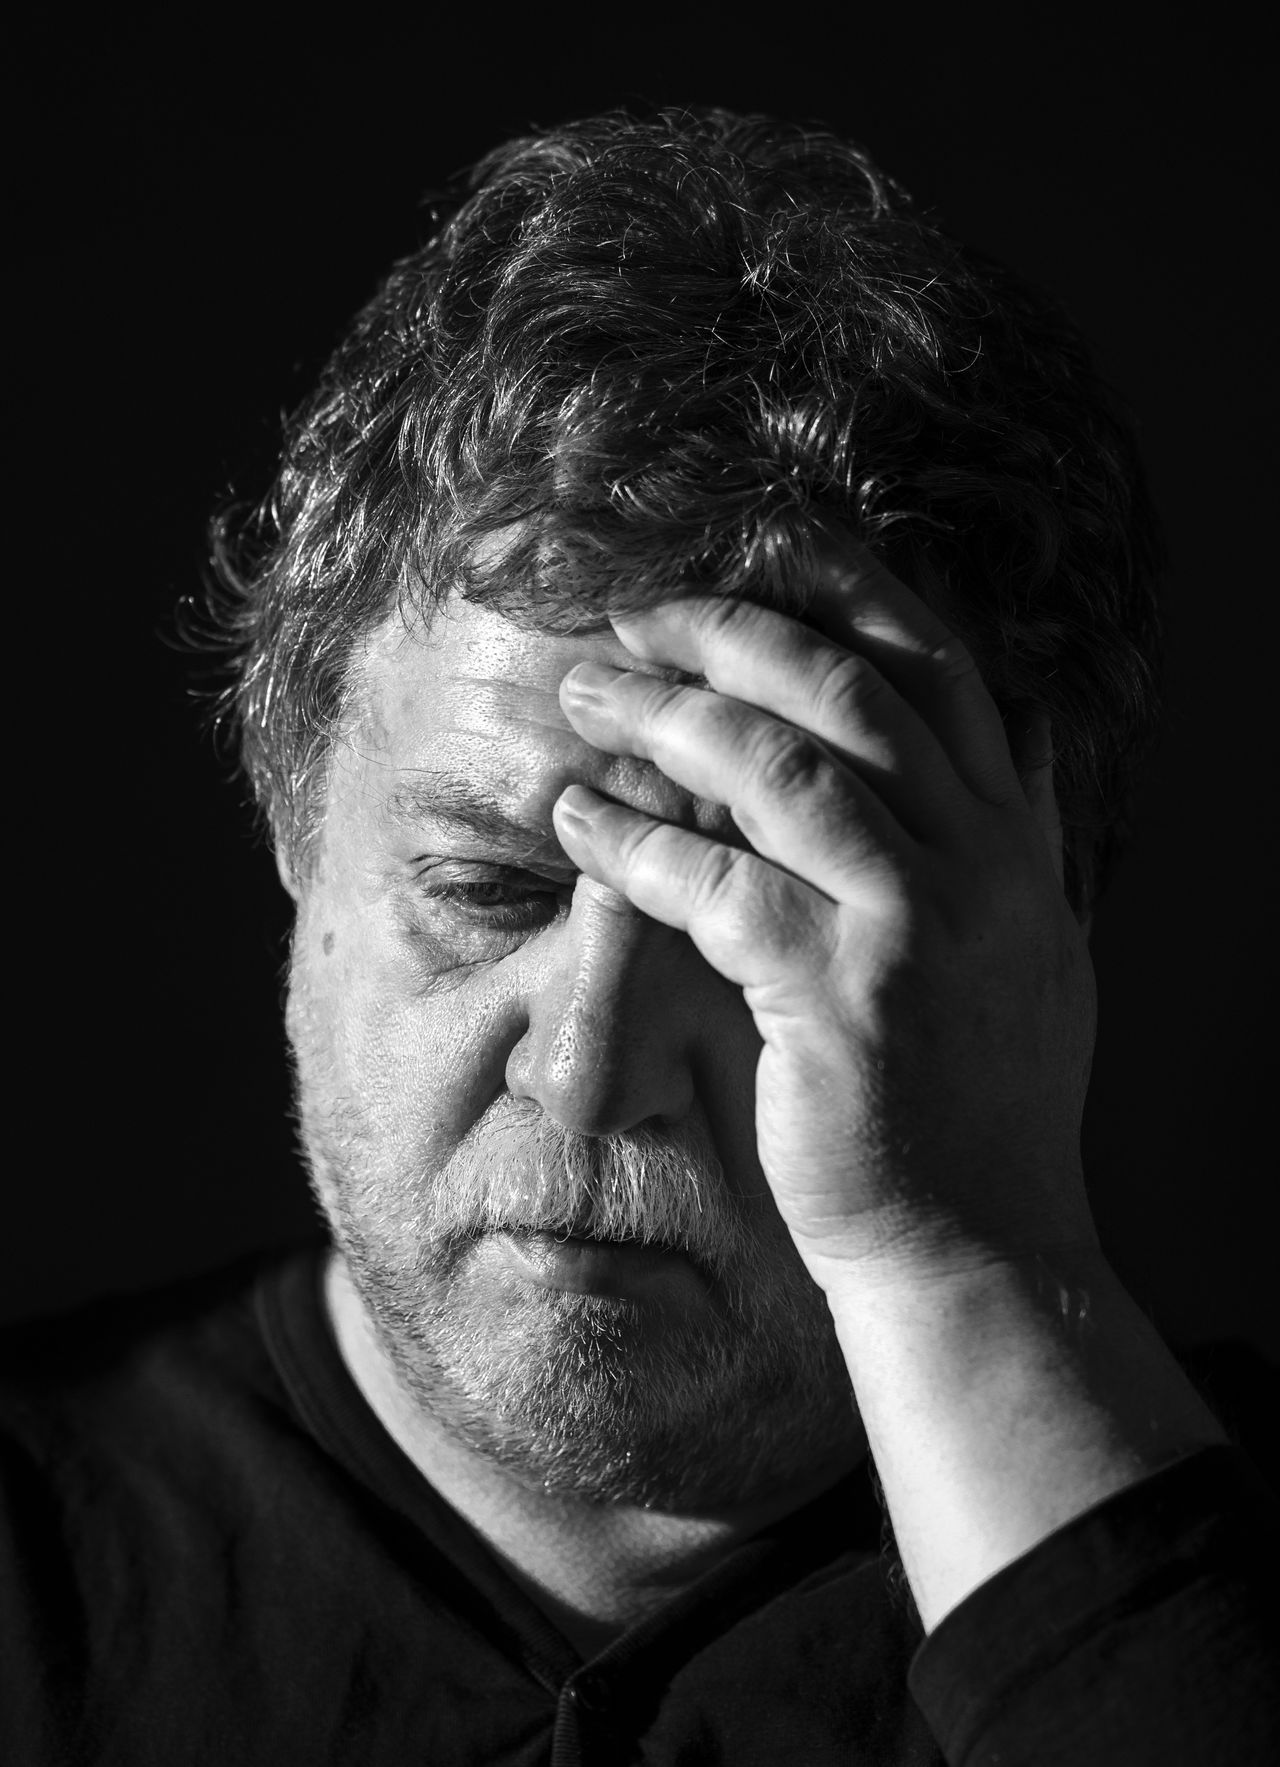 Black and white portrait of Middle aged sad caucasian man with beard and mustache Adult Aged Beard Black And White Black Background Caucasian Close-up Day Depression - Sadness Headshot Human Body Part Human Face Human Hand Indoors  Men Middle Mustache One Man Only One Person Only Men Portrait Real People Sad Studio Shot Tensed